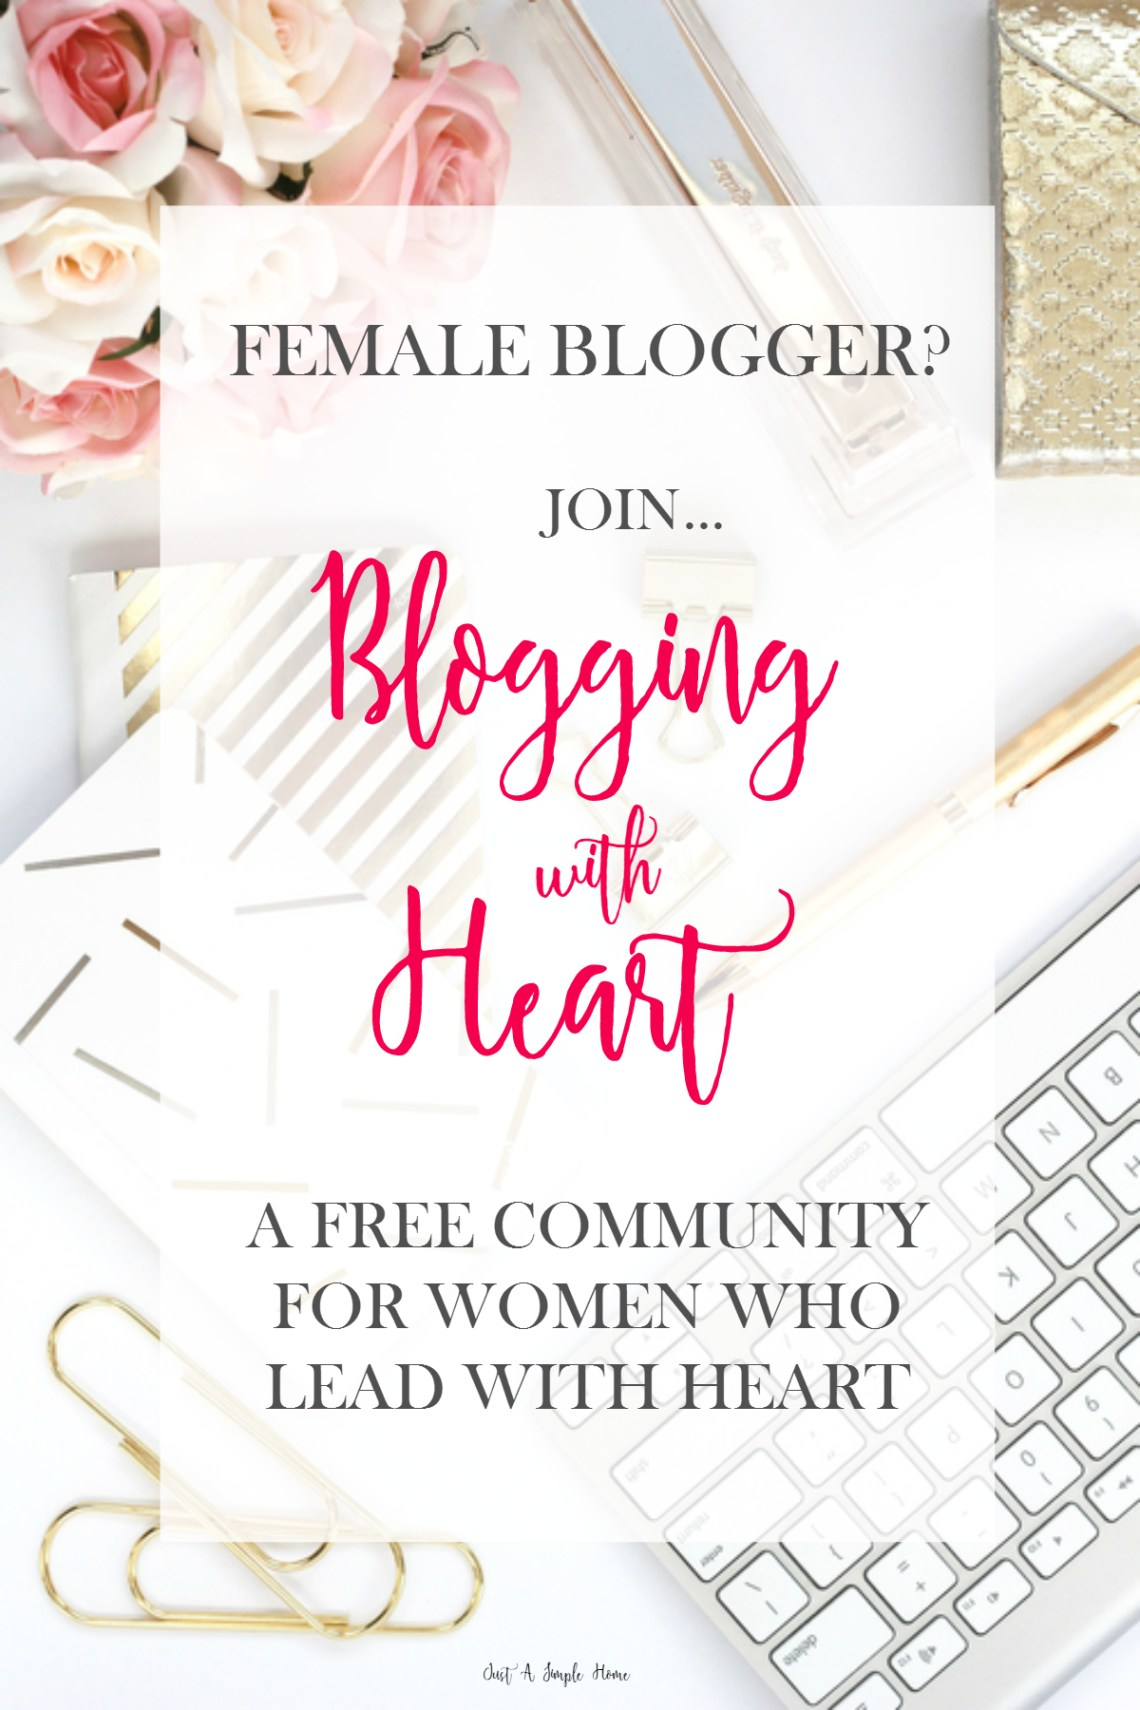 Blogging with Heart JSH